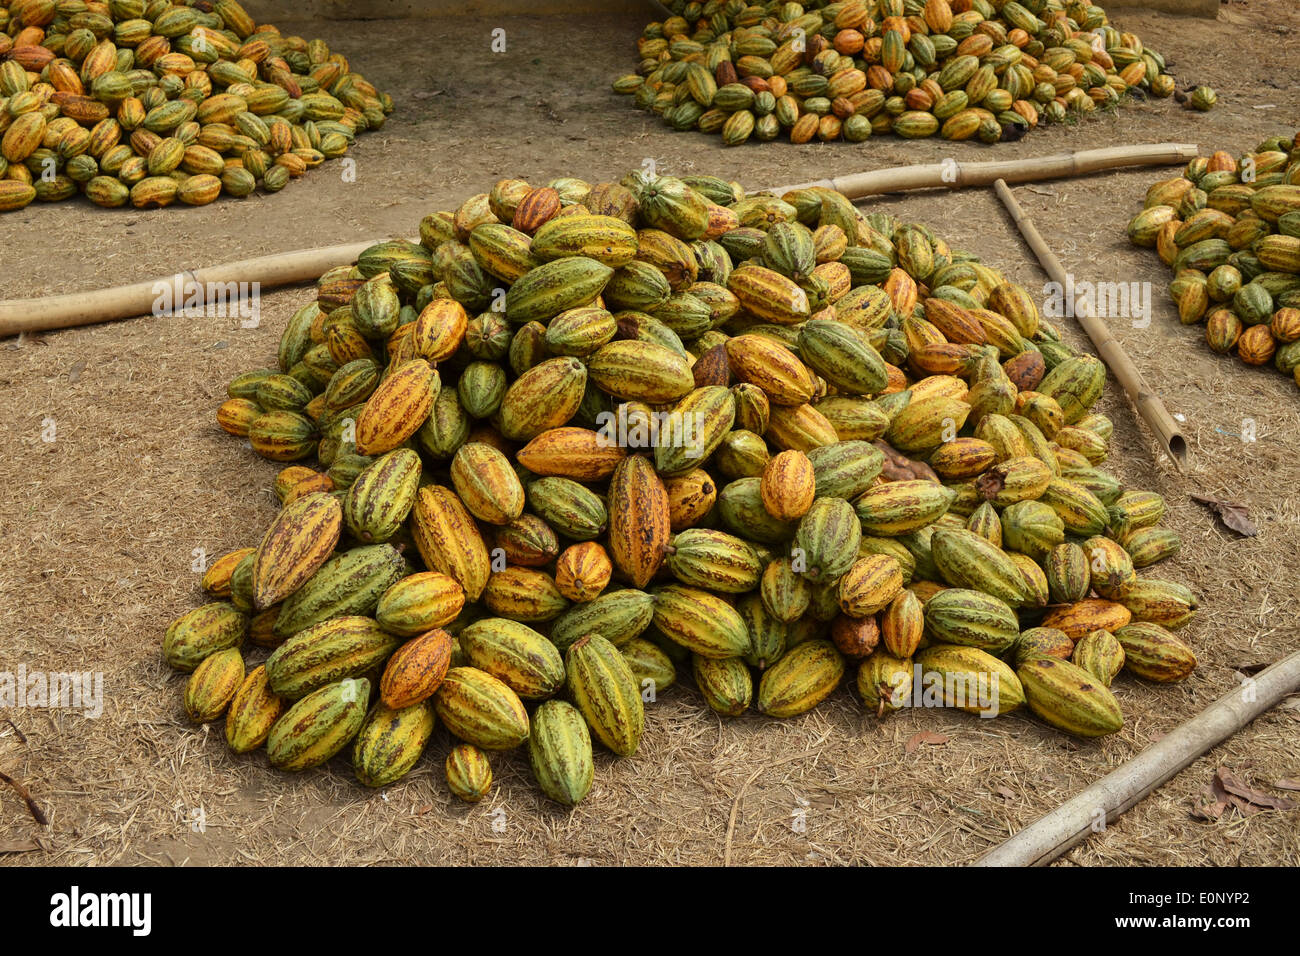 Cocoa pods in Ghana - Stock Image